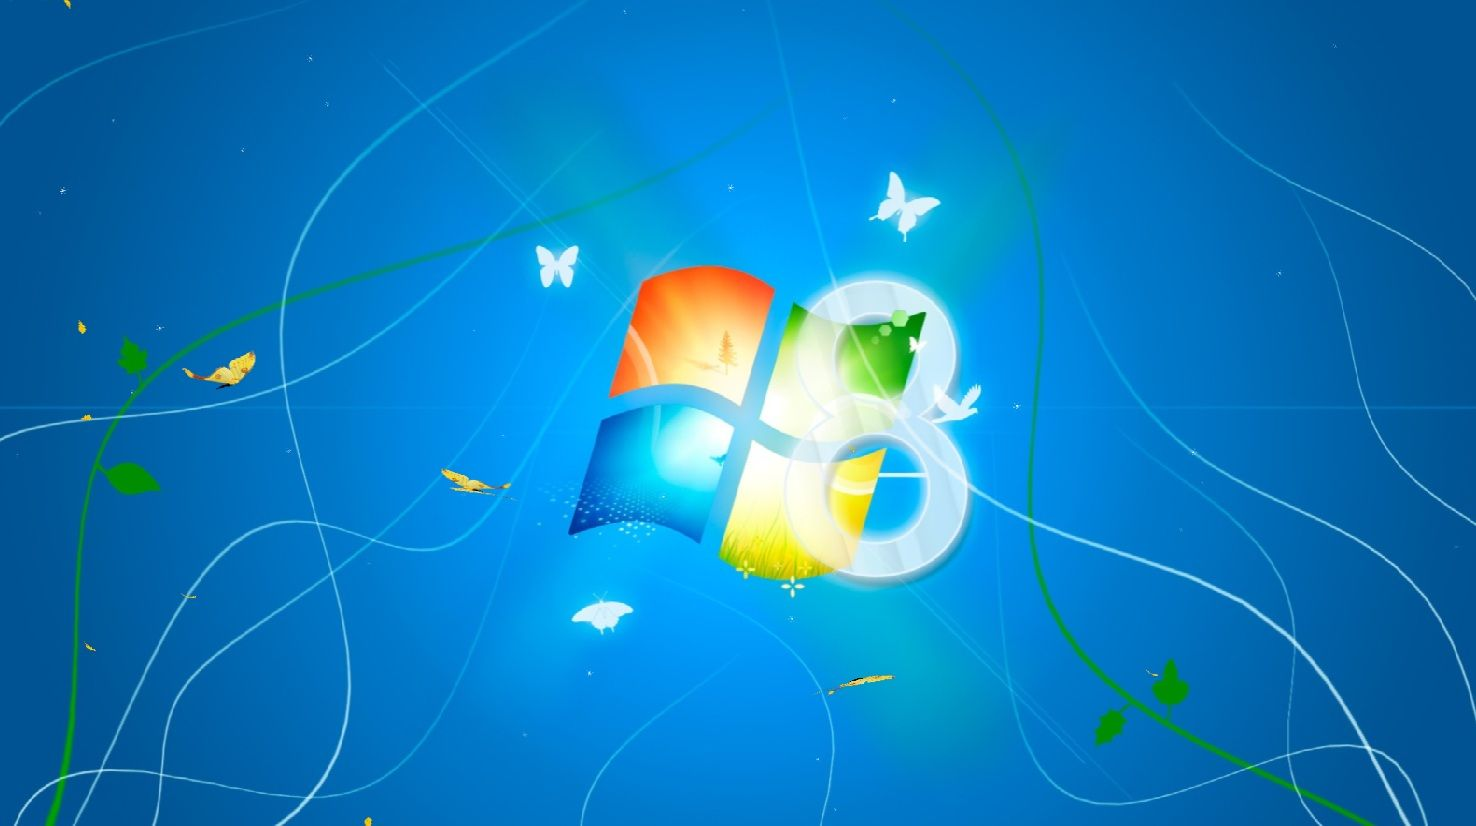 Download Windows 8 Light Animated Wallpaper Desktopanimatedcom